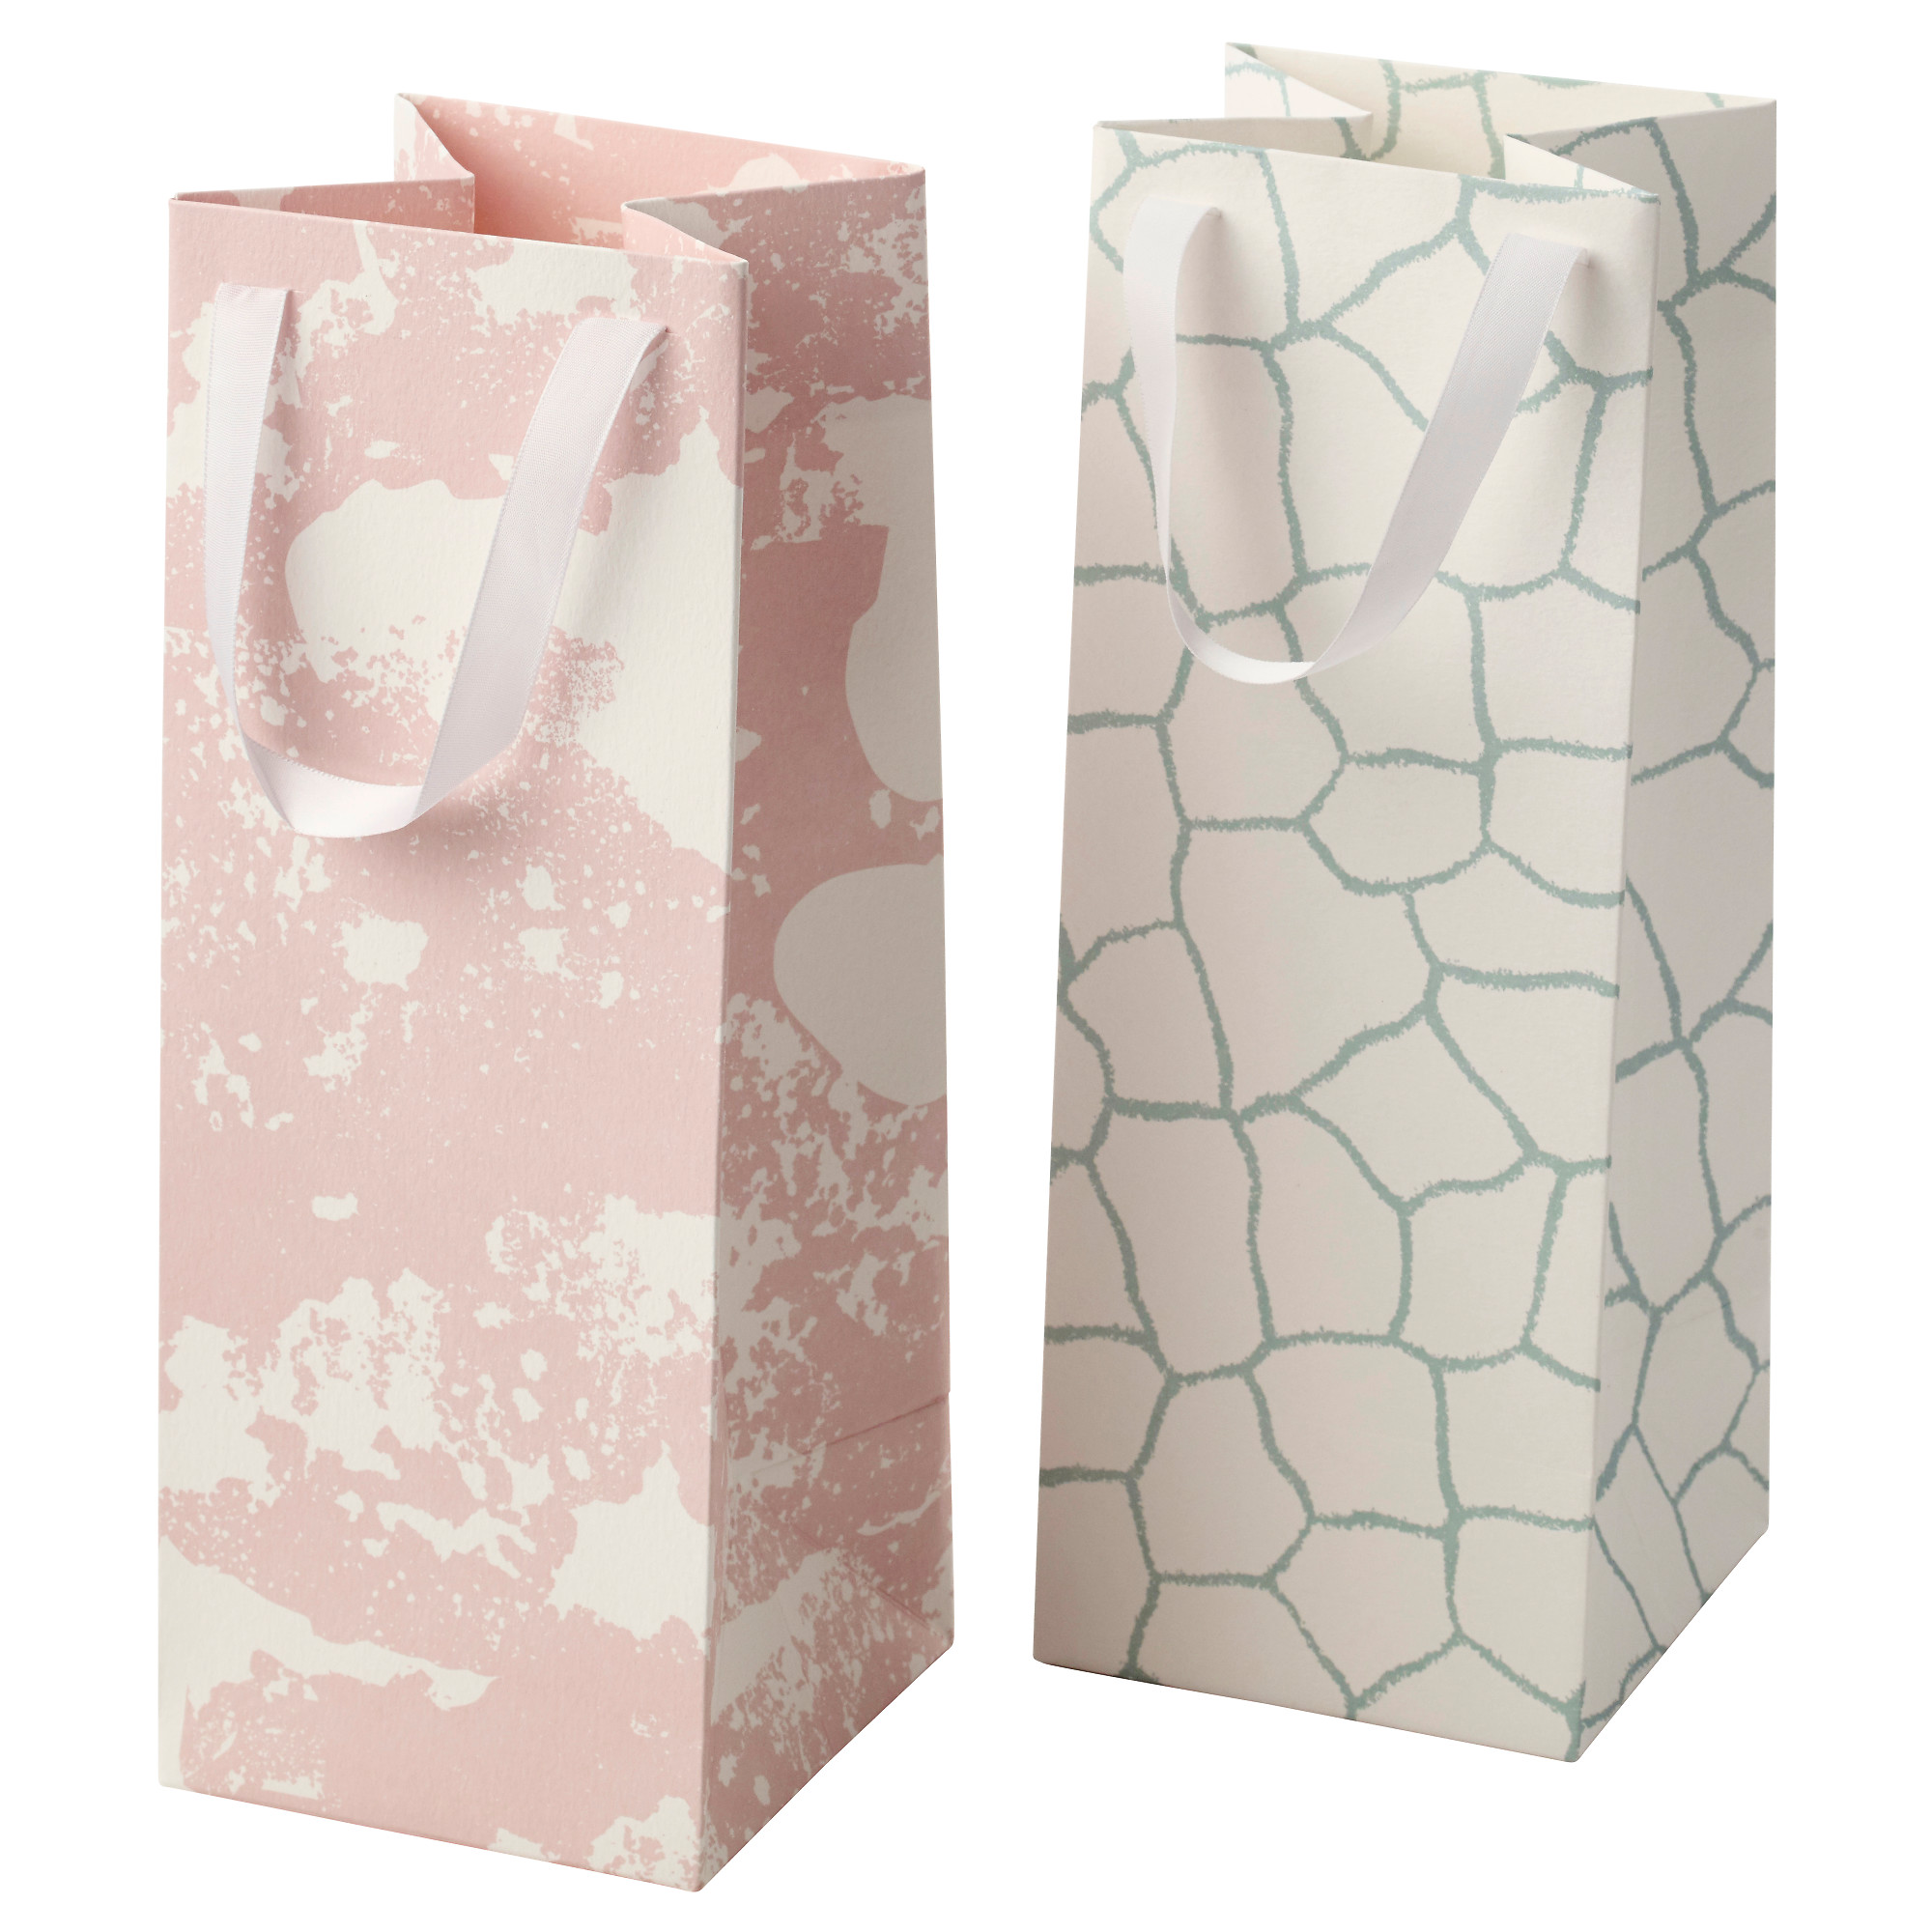 Decent Wine Bags Gift Bag Patterns Co Wine Gift Bags Bulk Wine Gift Bags Ireland gifts Wine Gift Bags